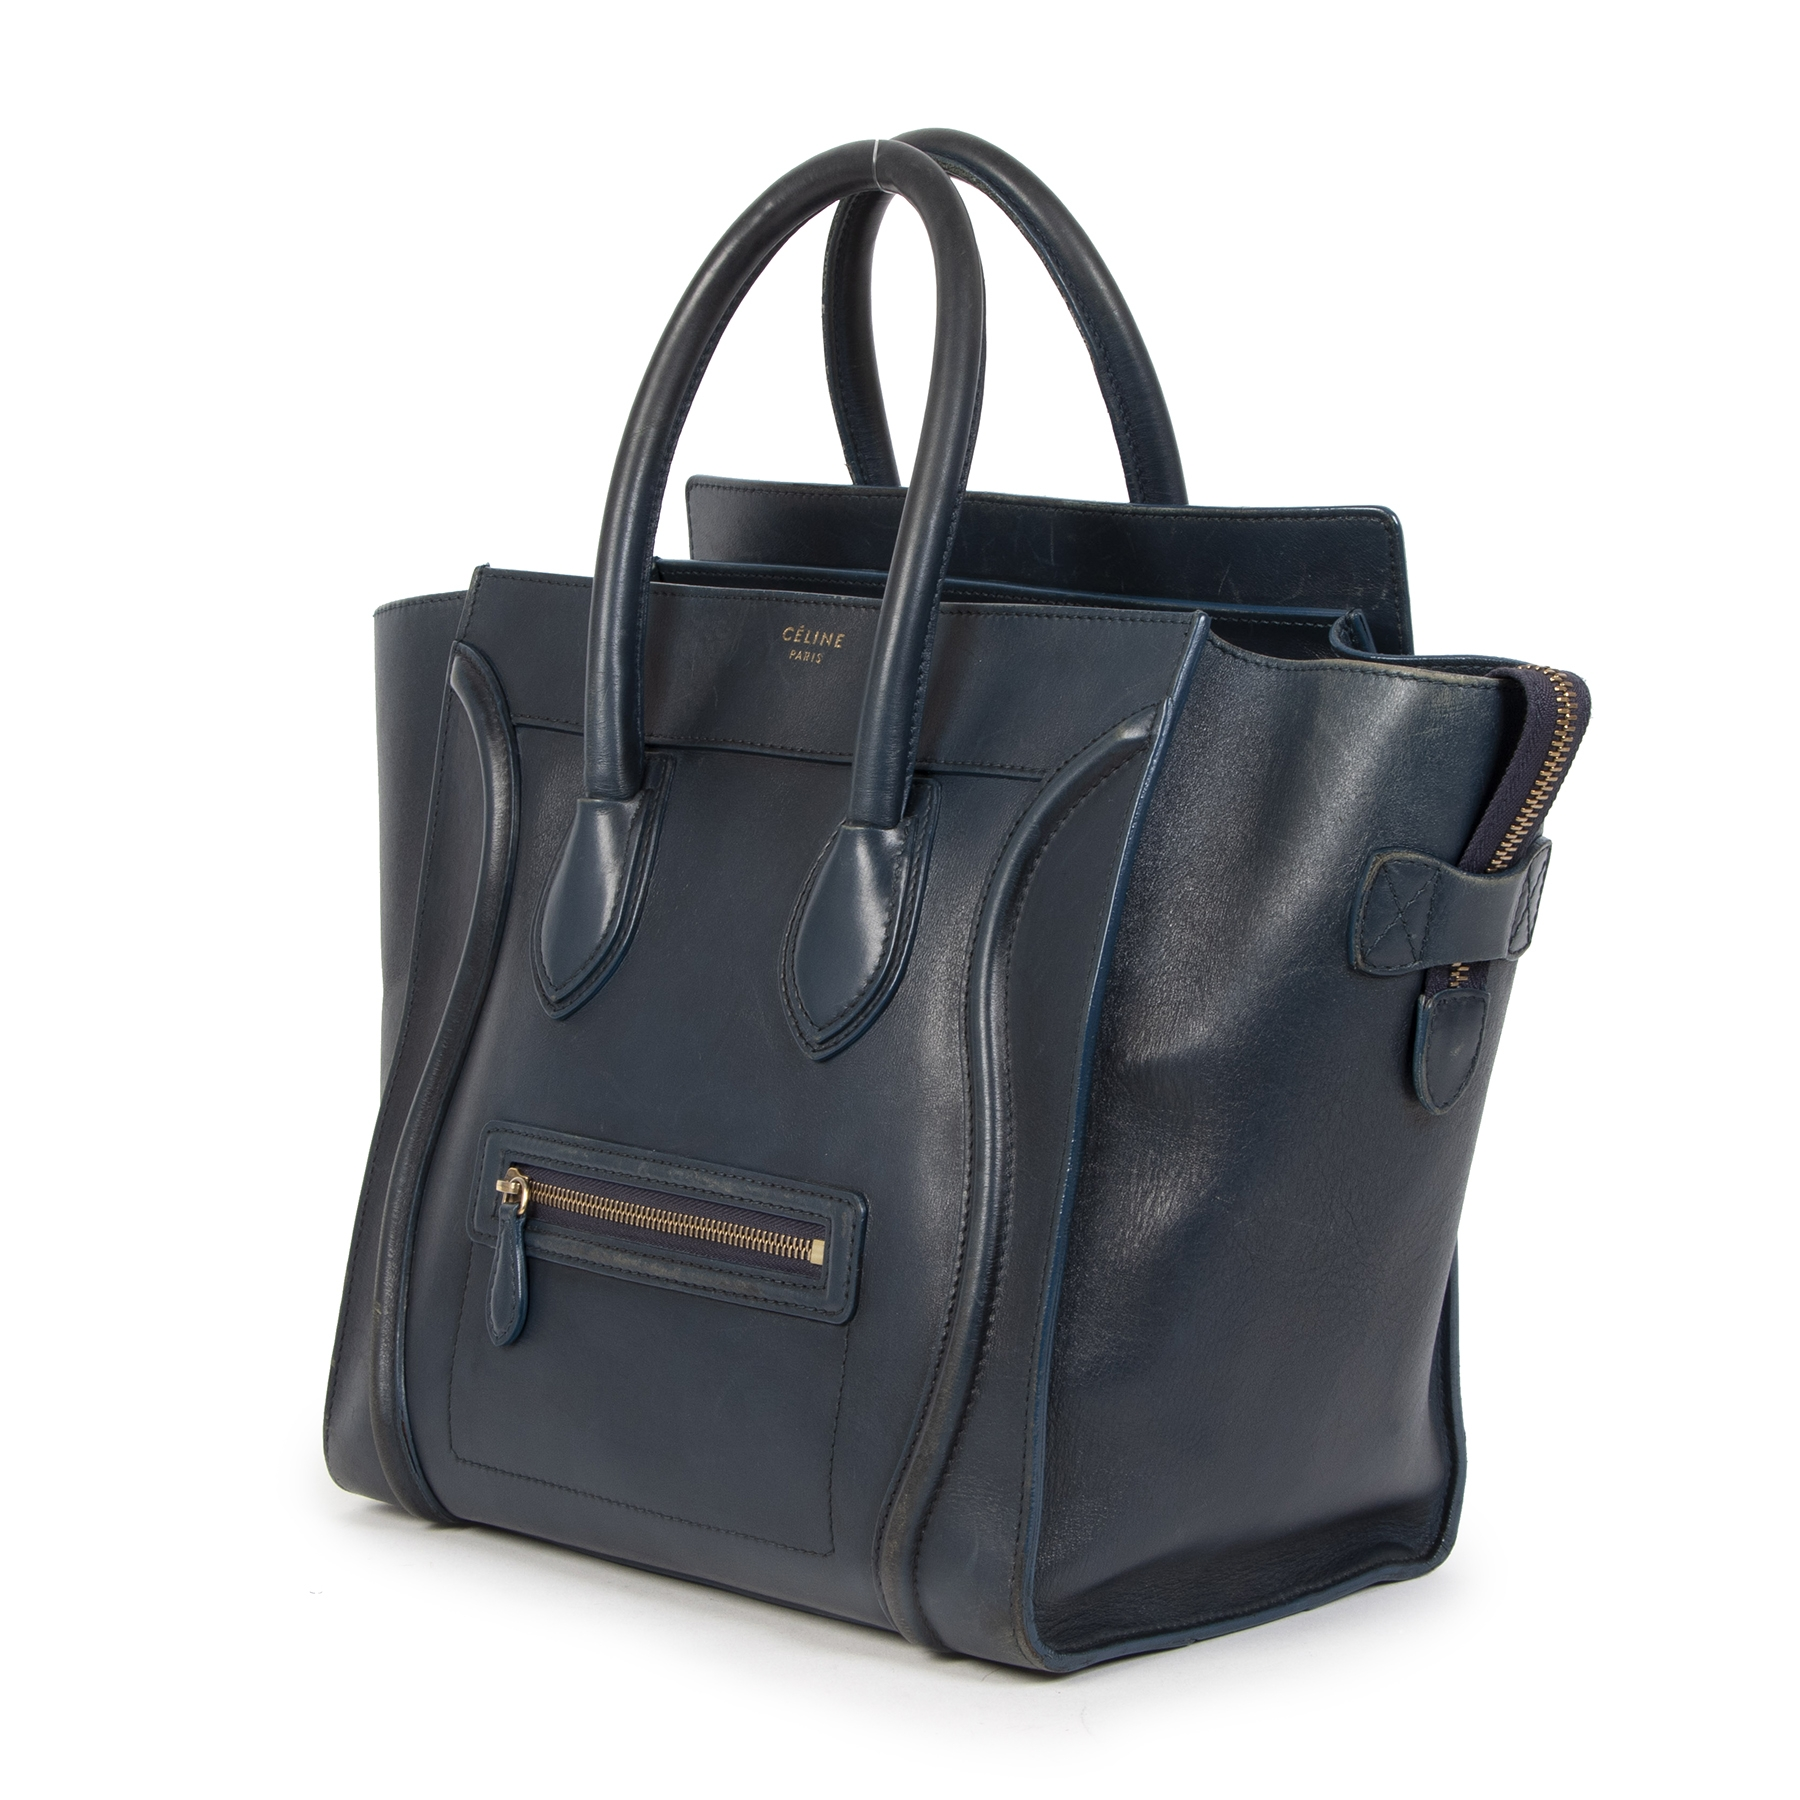 Buy authentic secondhand Celine Dark Blue Leather Luggage Bag at the right price online safe and secure at LabelLOV webshop luxury brand Antwerp Belgium